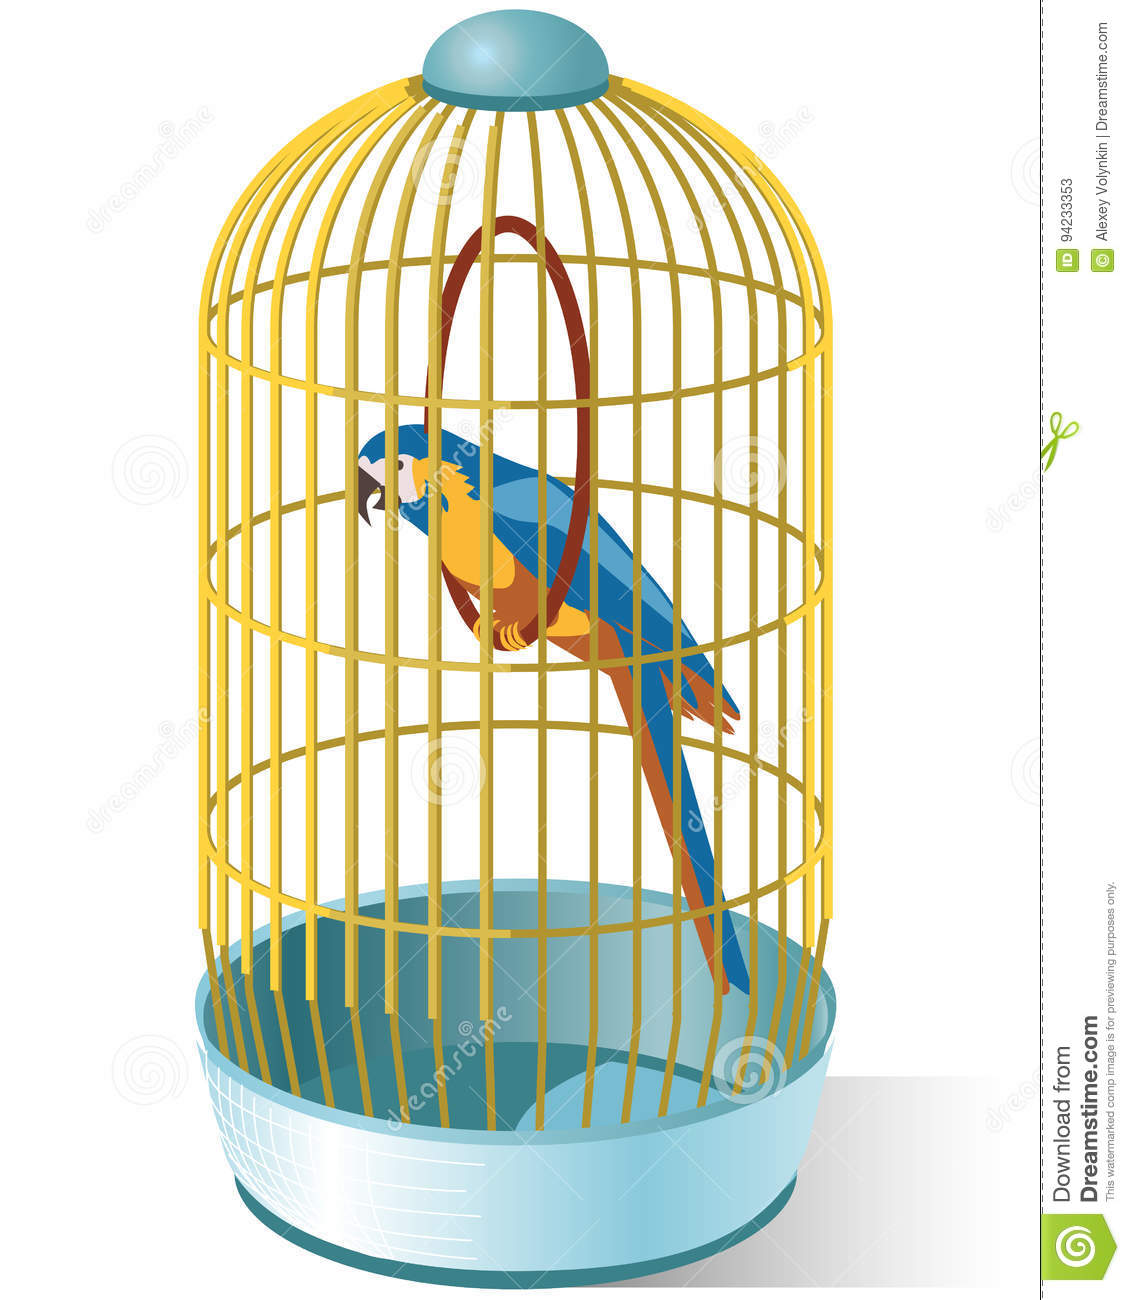 parrot in a cage stock vector illustration of parrot